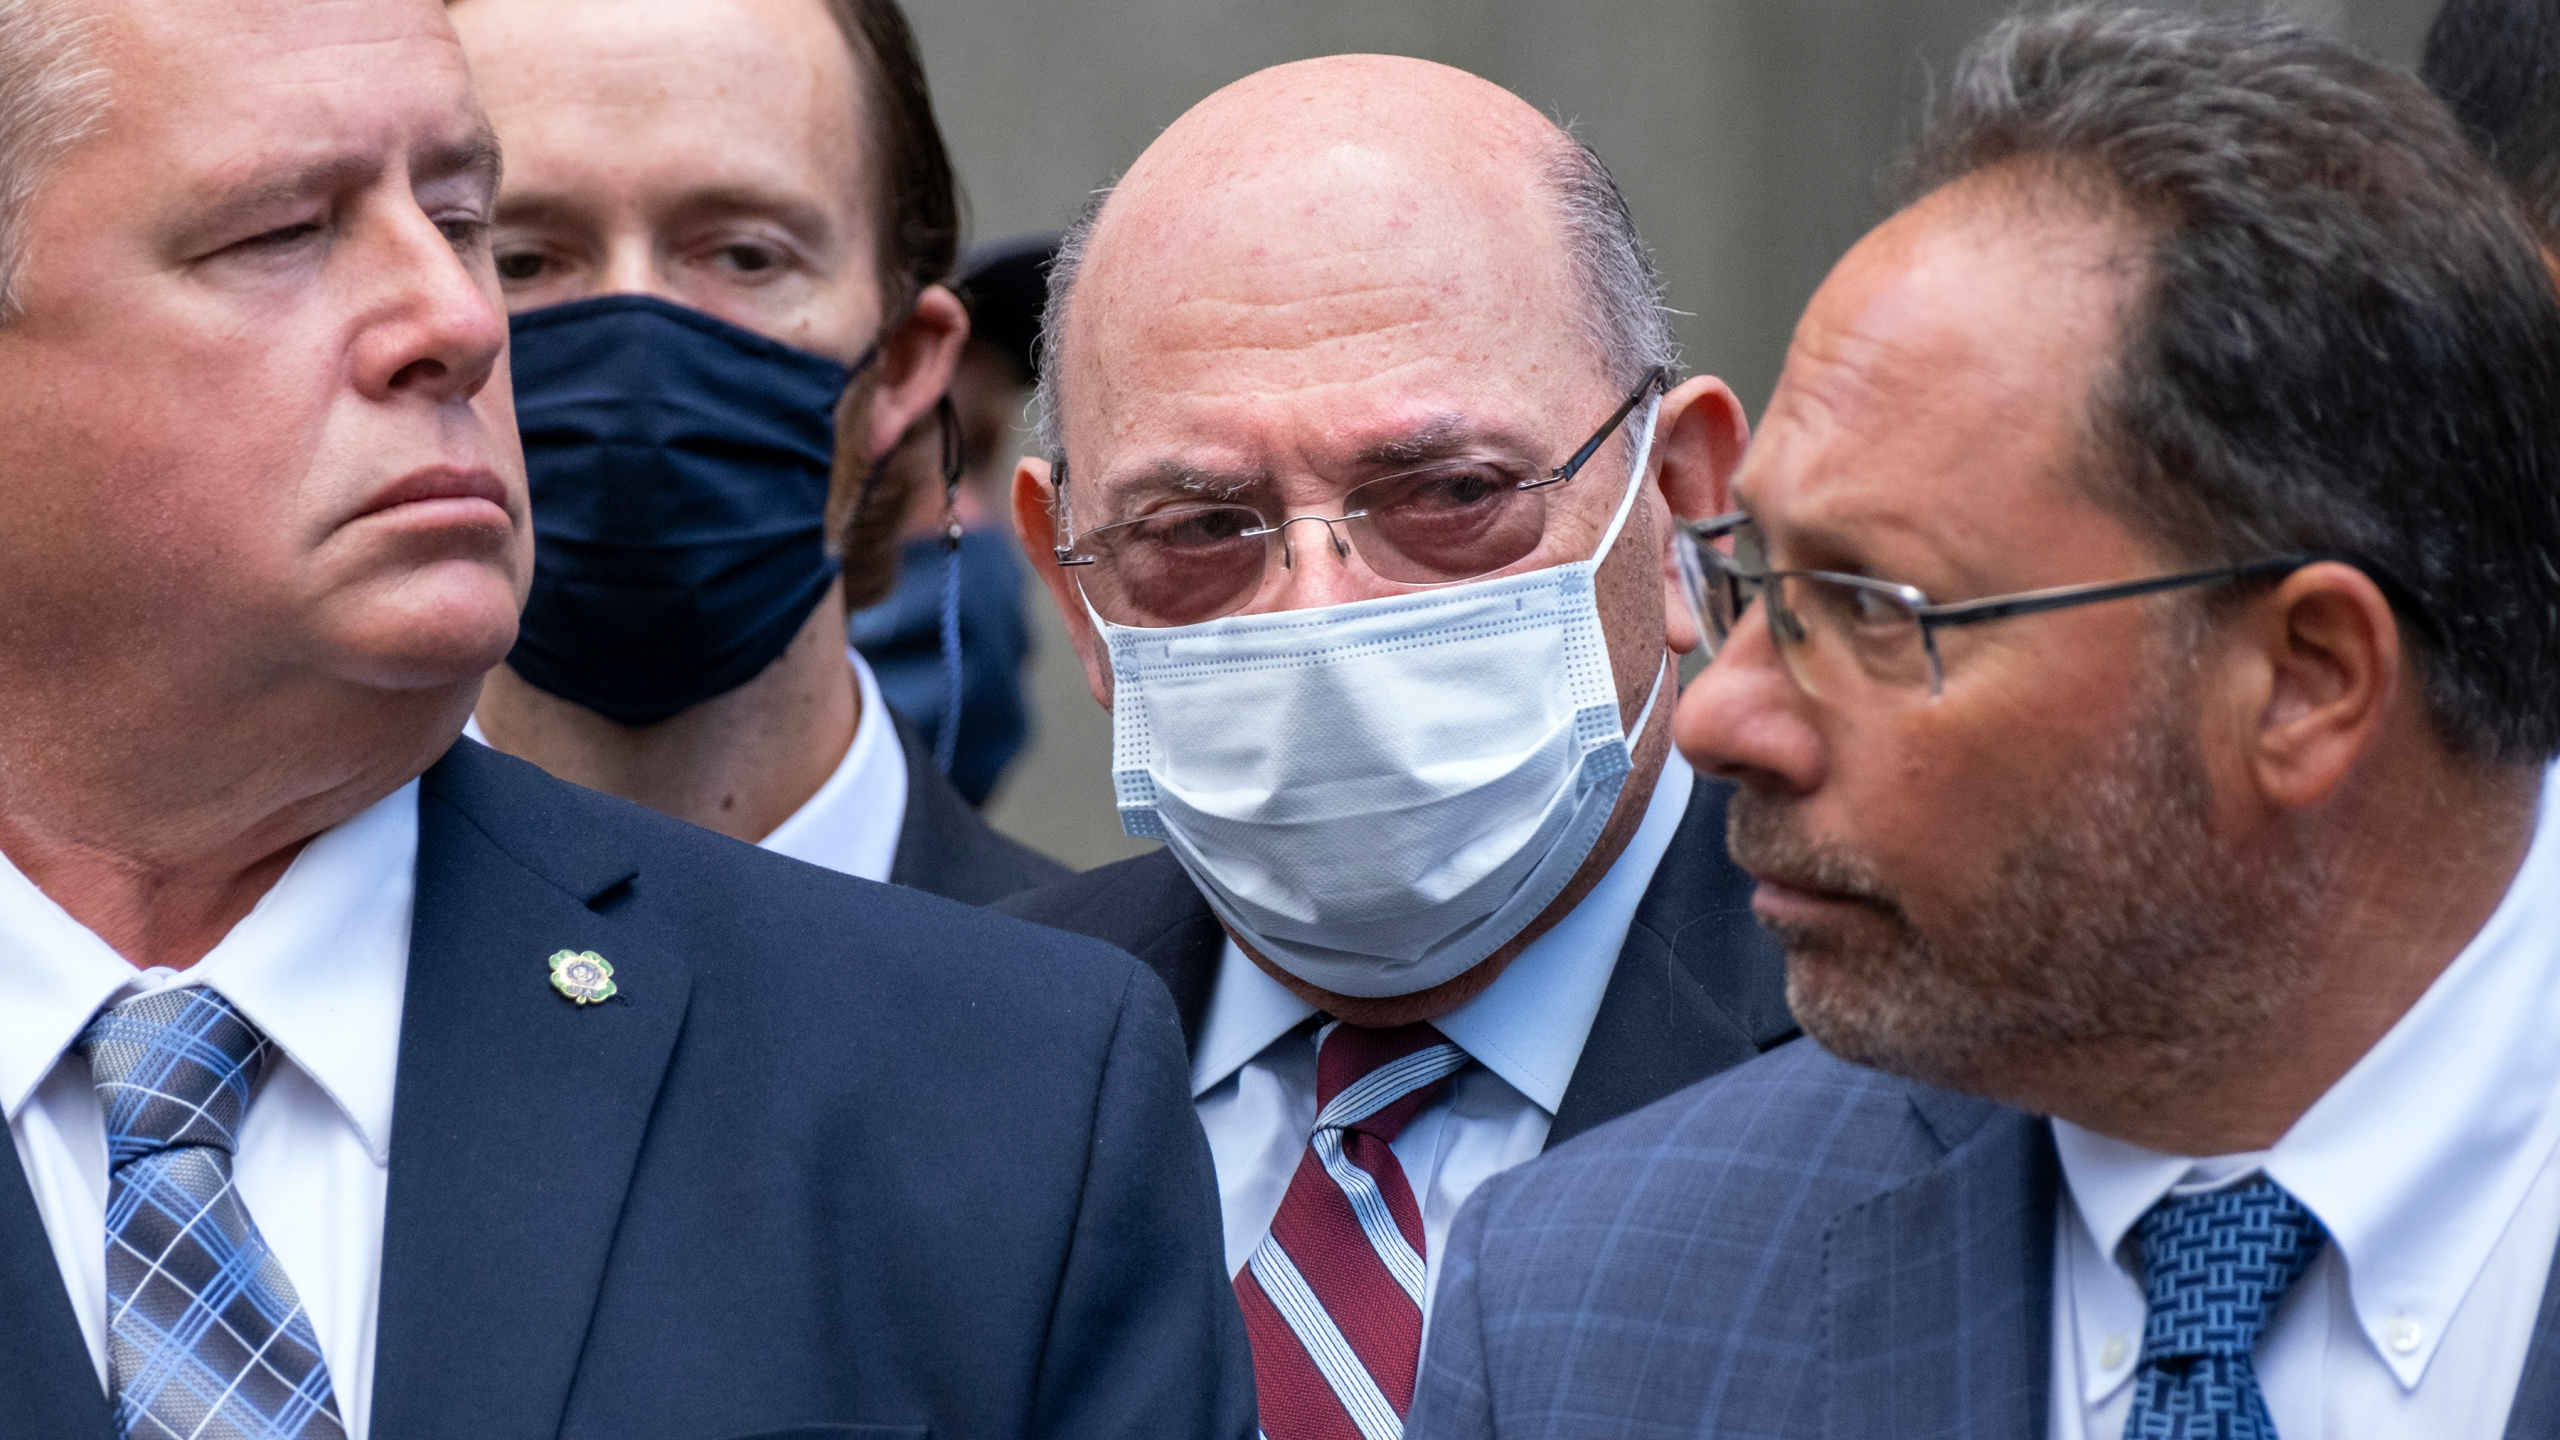 """The Trump Organization's Chief Financial Officer Allen Weisselberg, center, awaits a car after leaving a courtroom appearance in New York, Monday, Sept. 20, 2021. Donald Trump's company and its longtime finance chief were charged Thursday in what a prosecutor called a """"sweeping and audacious"""" tax fraud scheme that saw the Trump executive allegedly receive more than $1.7 million in off-the-books compensation, including apartment rent, car payments and school tuition. (AP Photo/Craig Ruttle)"""